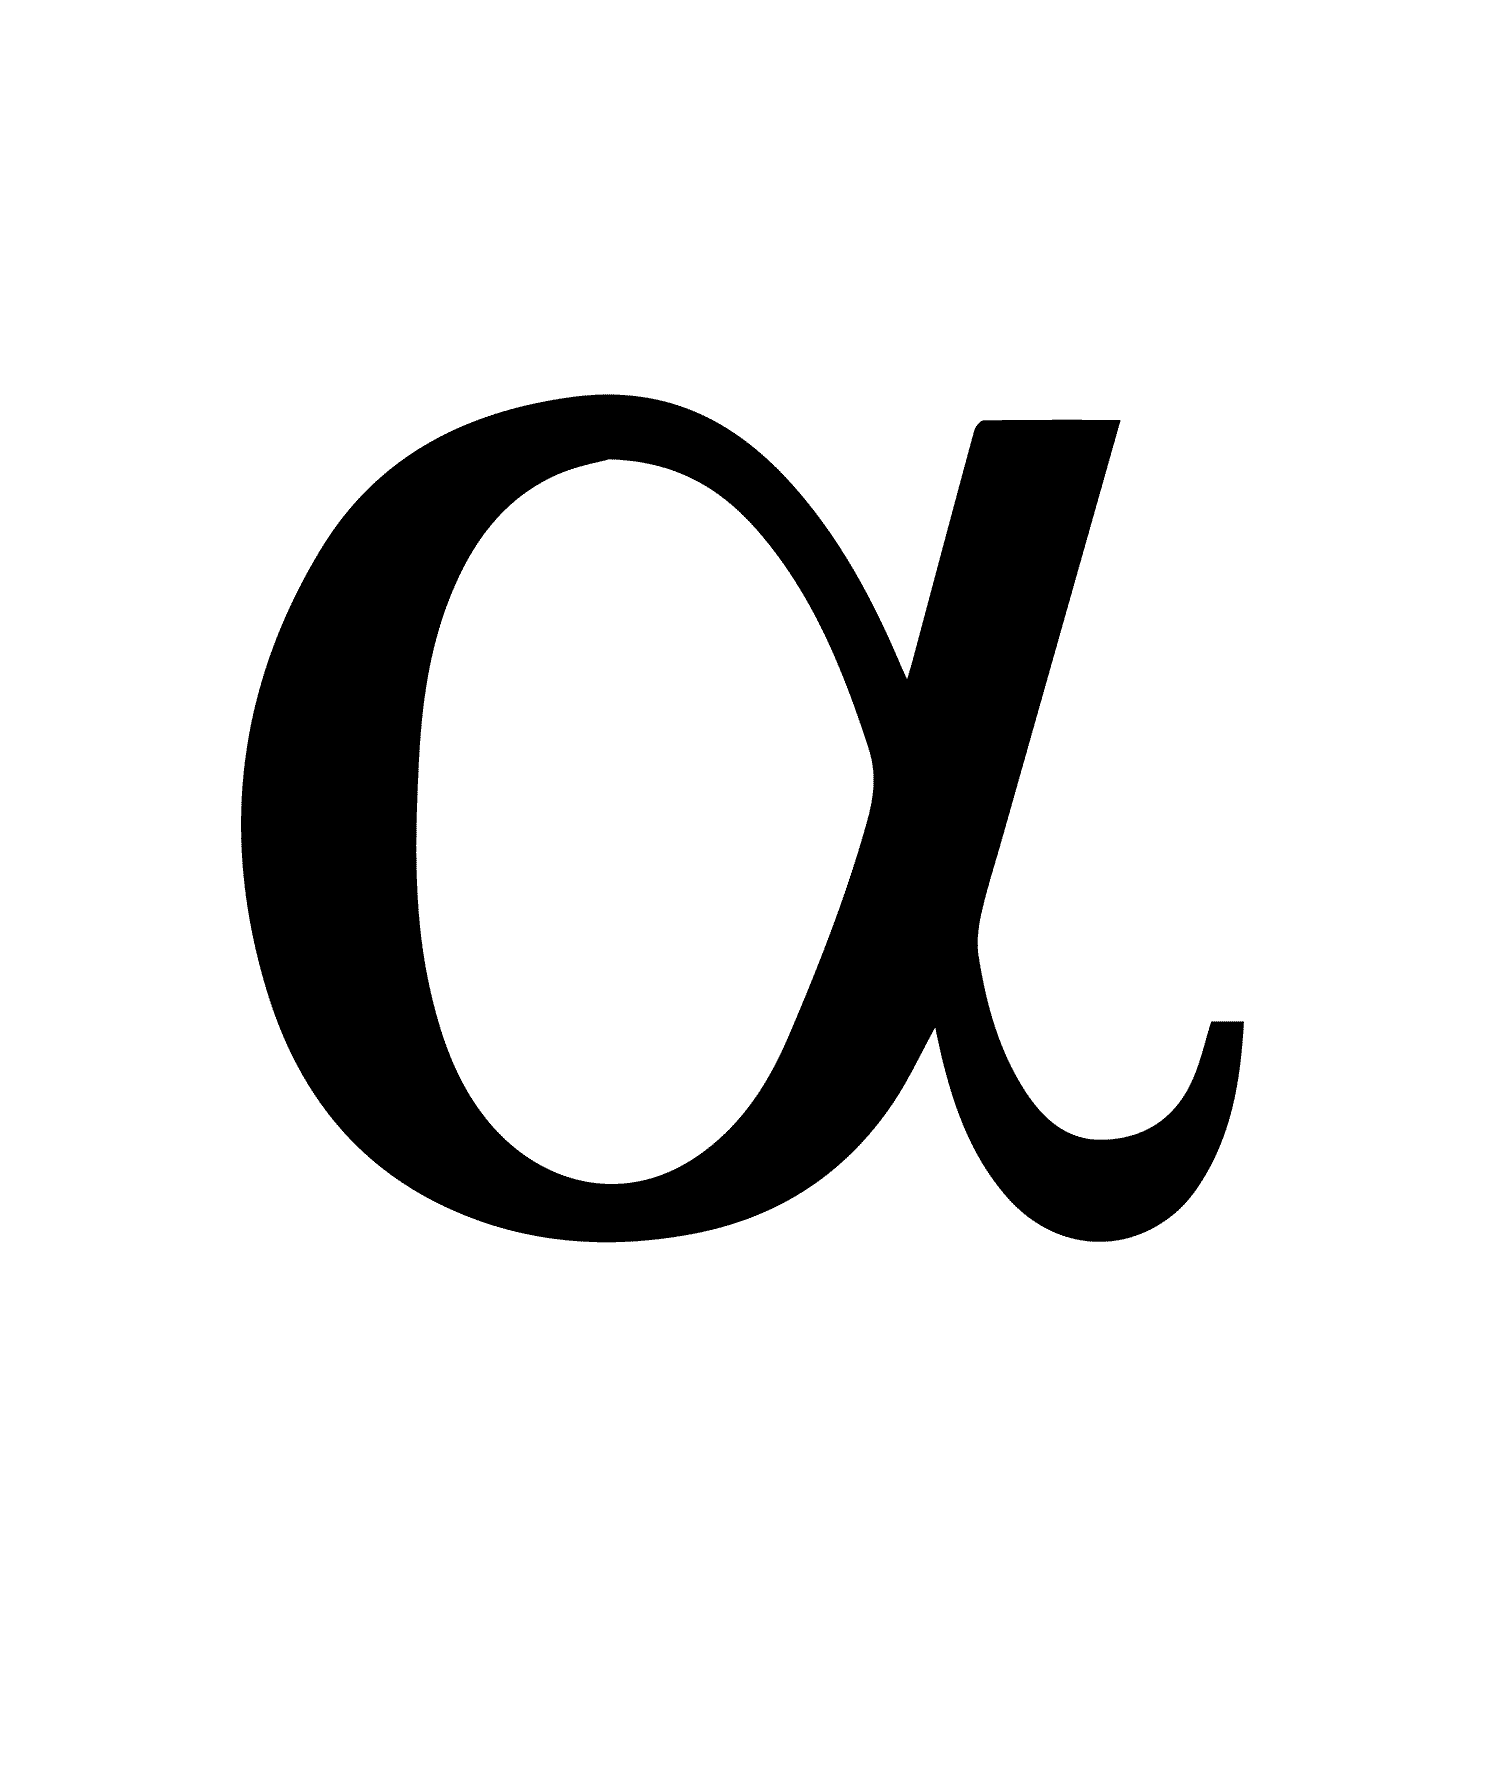 Alpha Symbol and Its Meaning 1